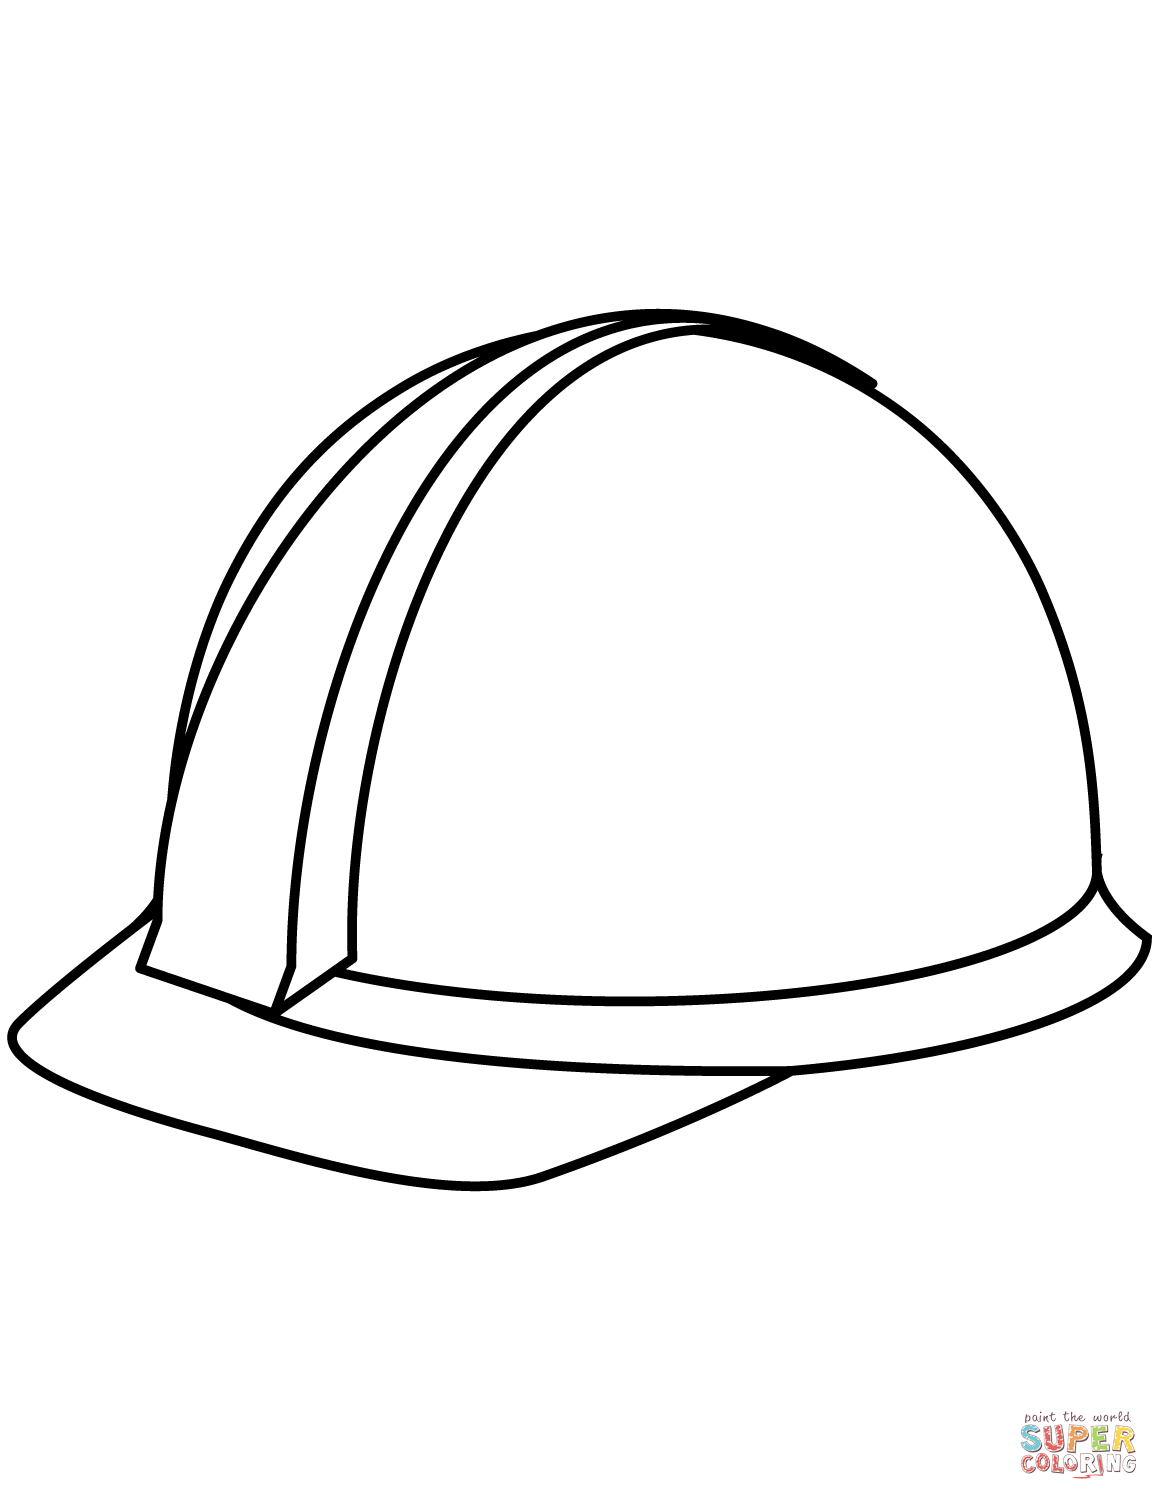 Hard Hat Super Coloring Coloring Pages Hat Crafts Truck Coloring Pages